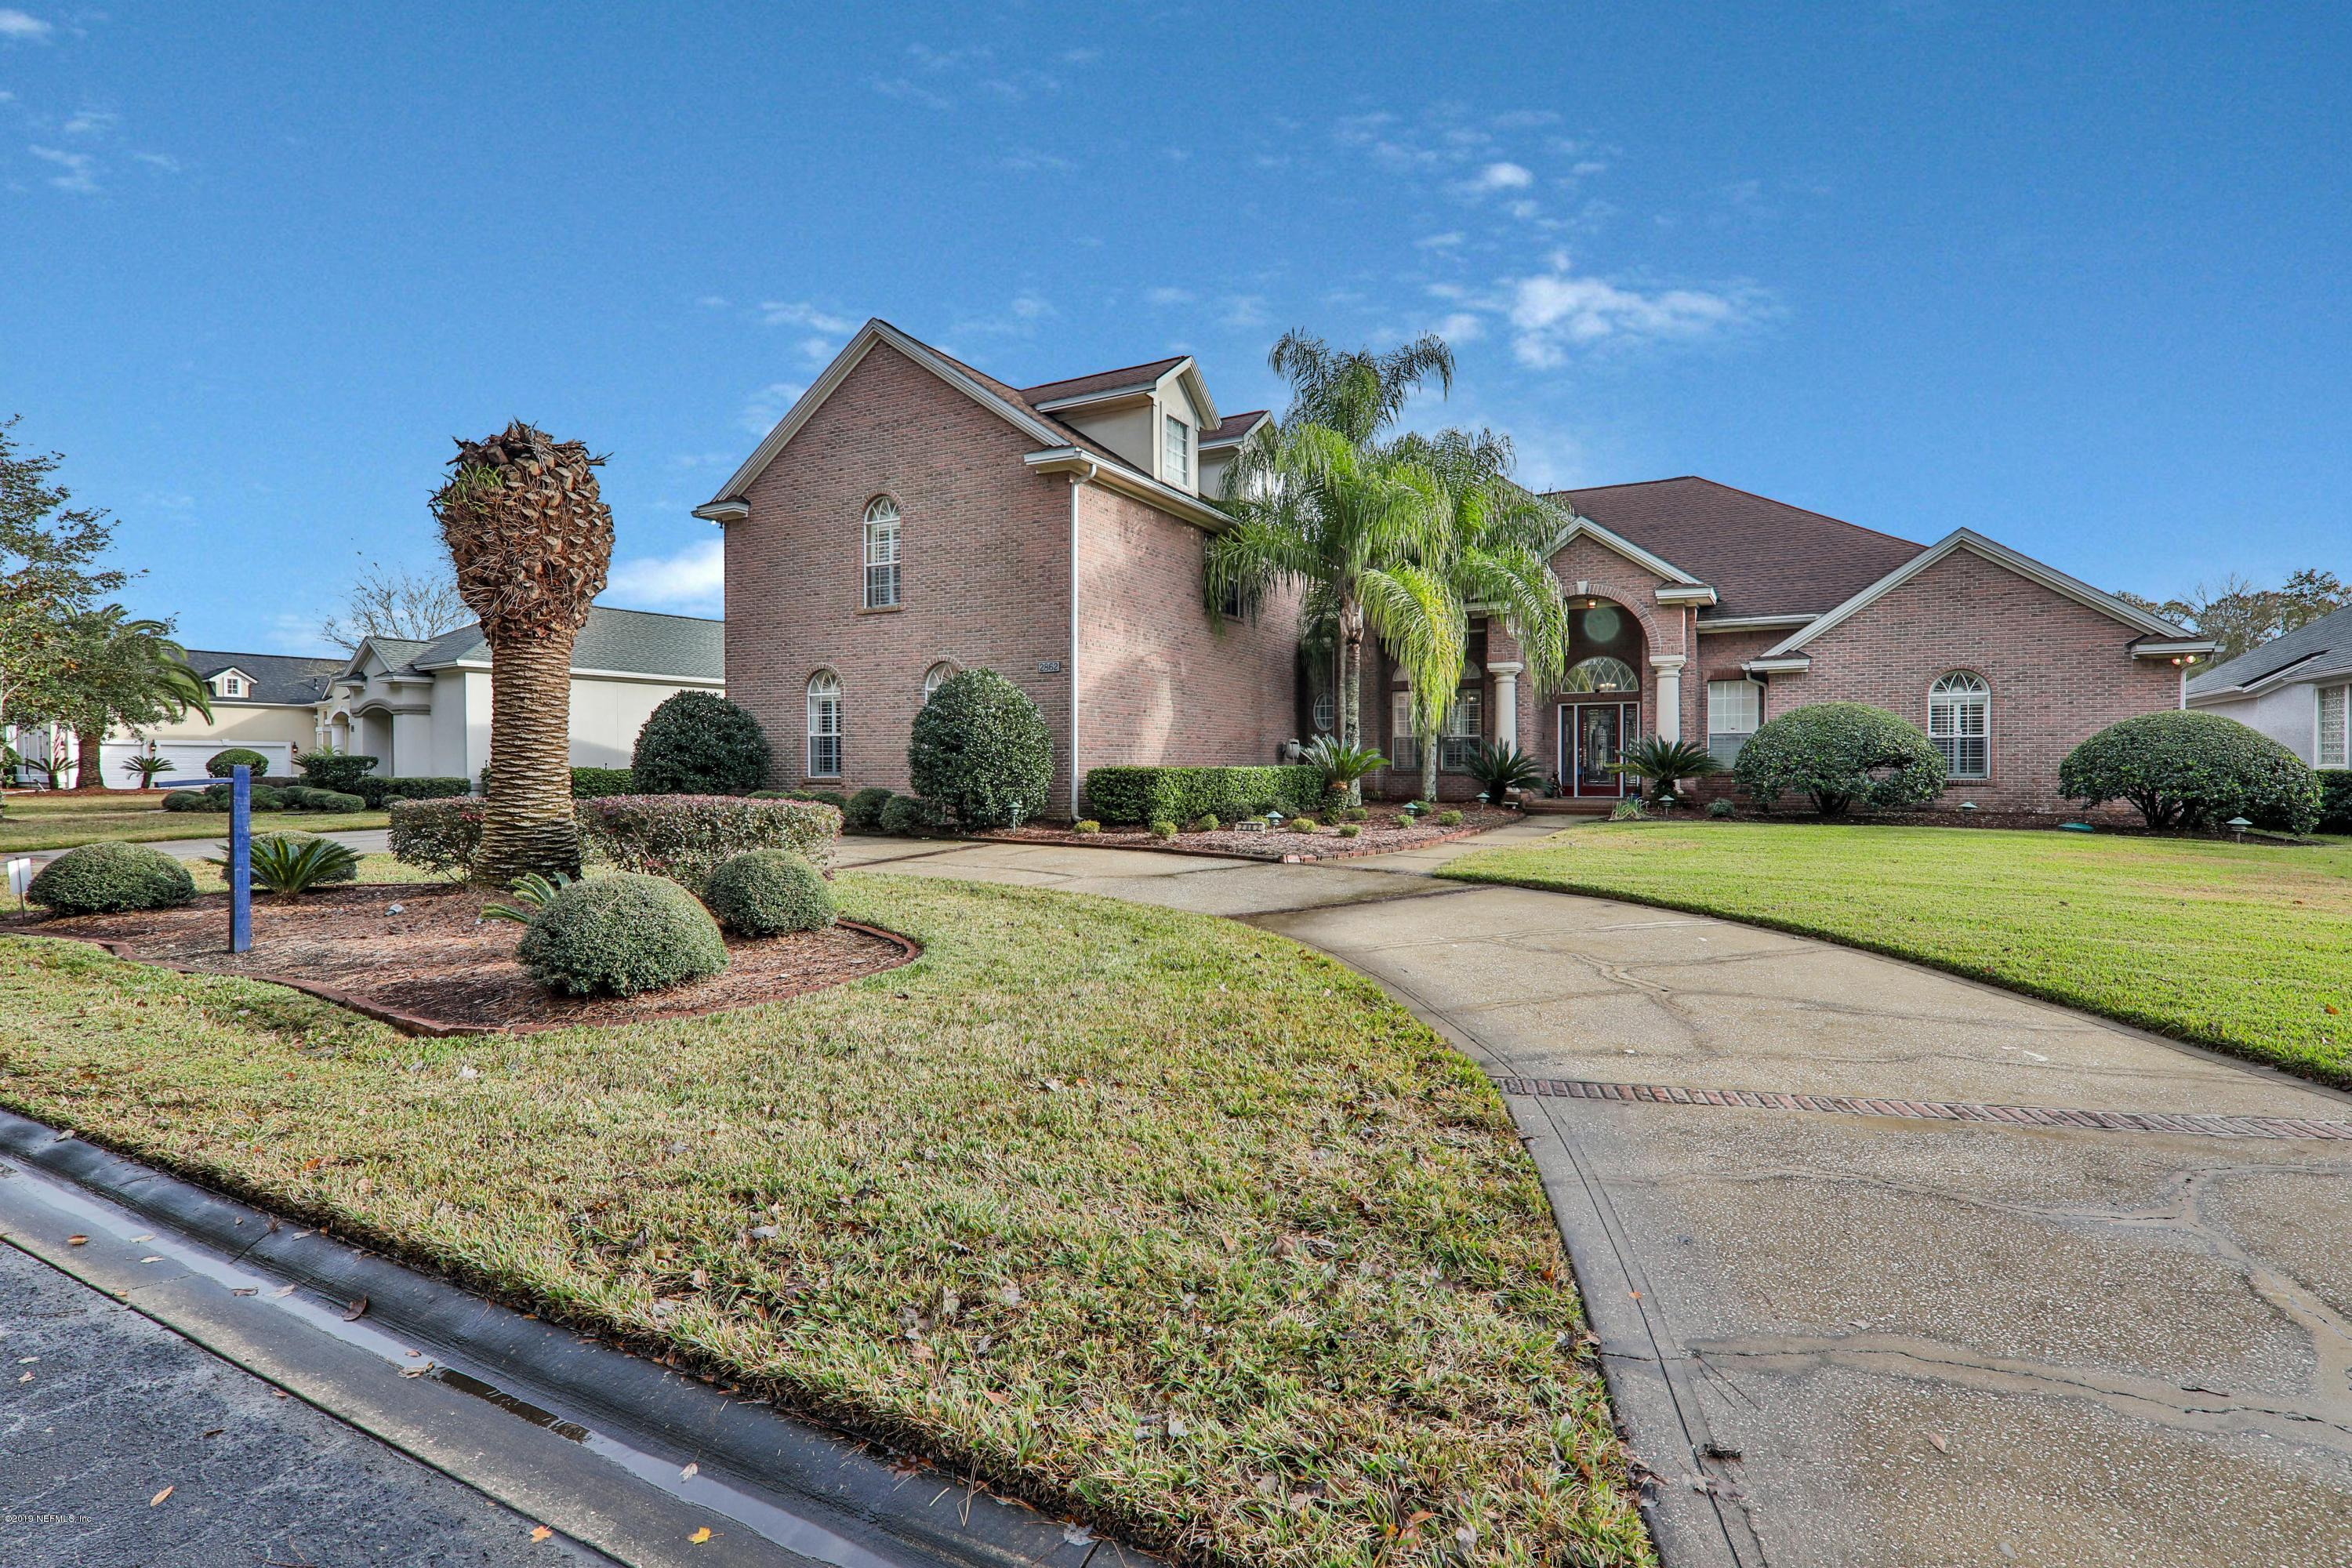 2862 COUNTRY CLUB, ORANGE PARK, FLORIDA 32073, 6 Bedrooms Bedrooms, ,4 BathroomsBathrooms,Residential - single family,For sale,COUNTRY CLUB,973012